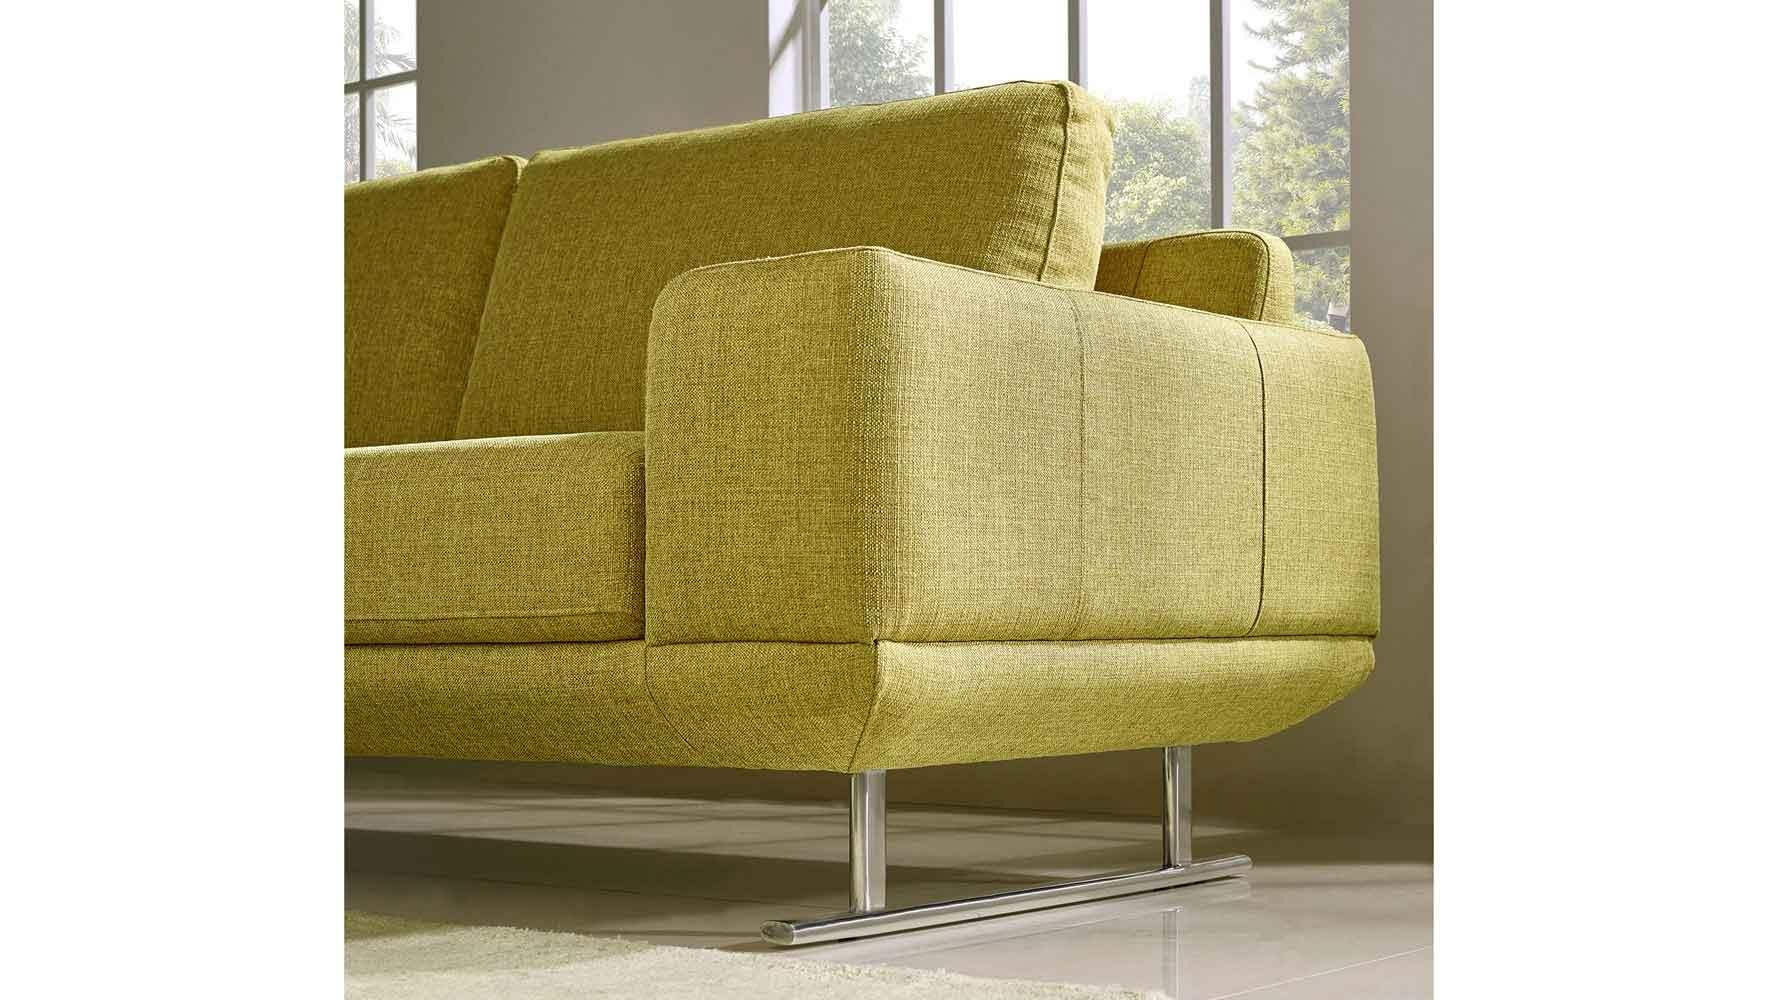 Modern Chartreuse Fabric Della Sofa And Loveseat Set | Zuri Furniture In Chartreuse Sofas (Image 18 of 20)